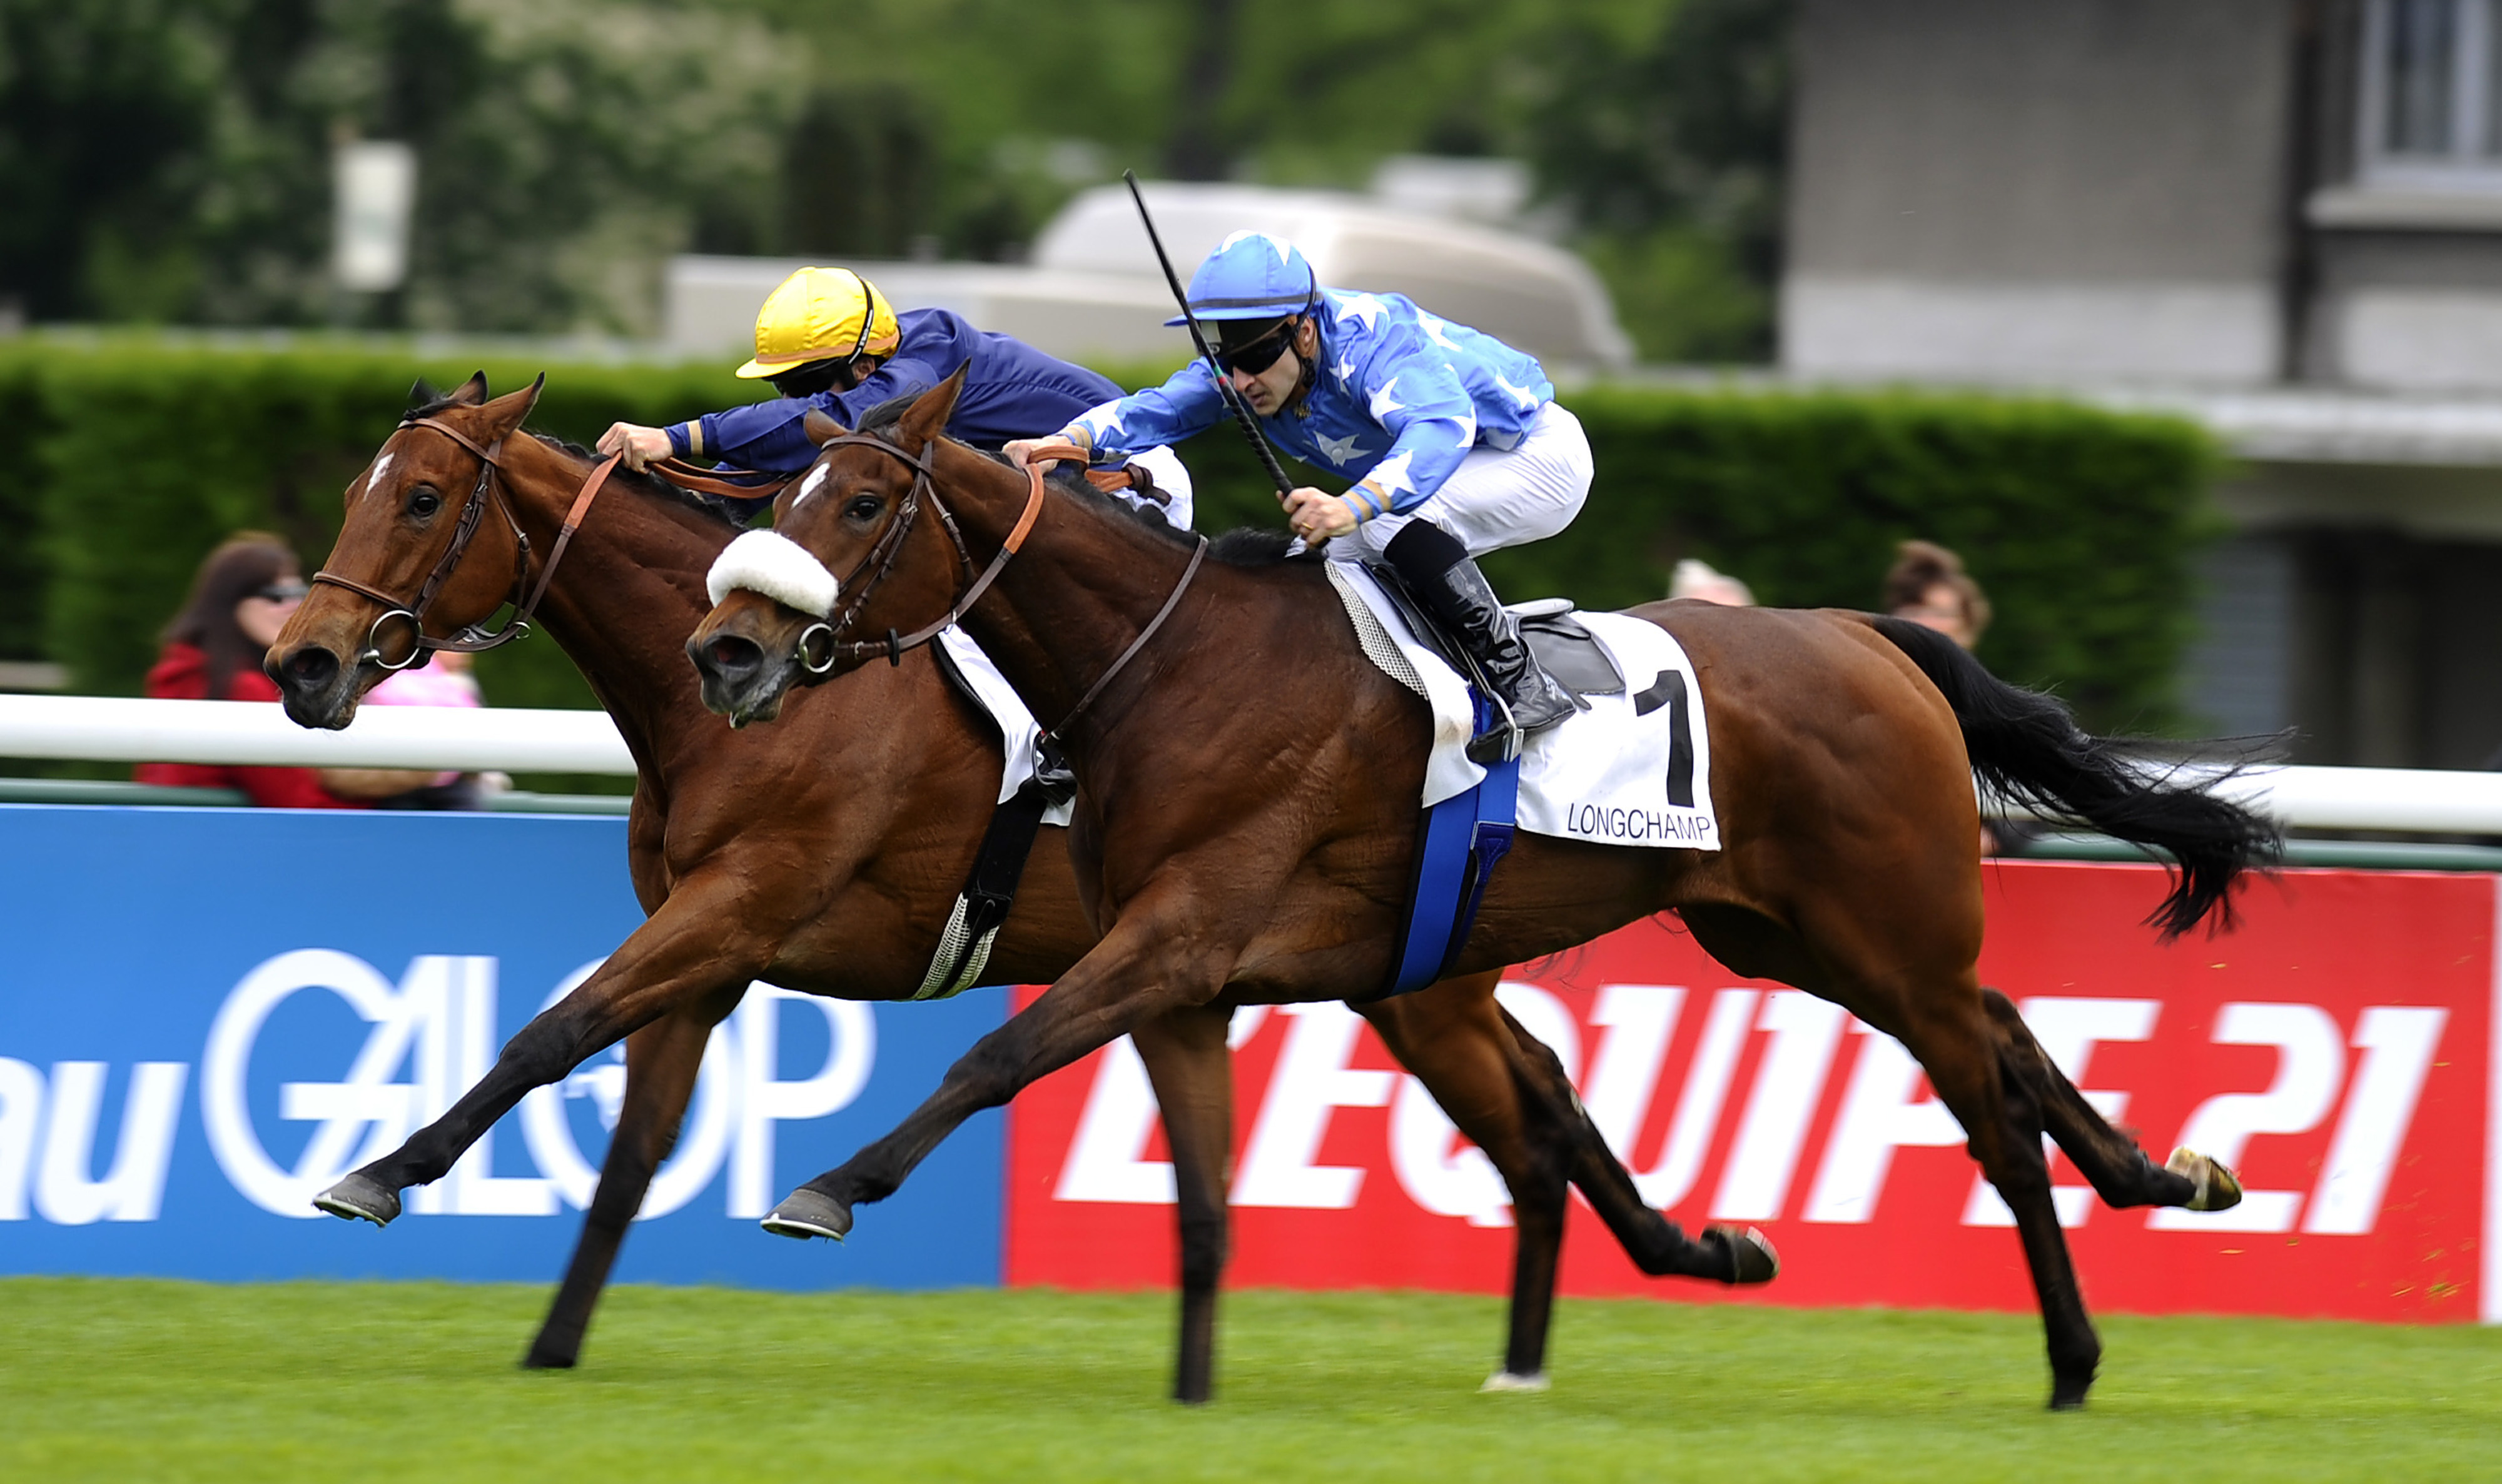 French 1000 Guineas winner Flotilla (FR). The filly also won the 2012 Breeders' Cup Juvenile Fillies Turf.